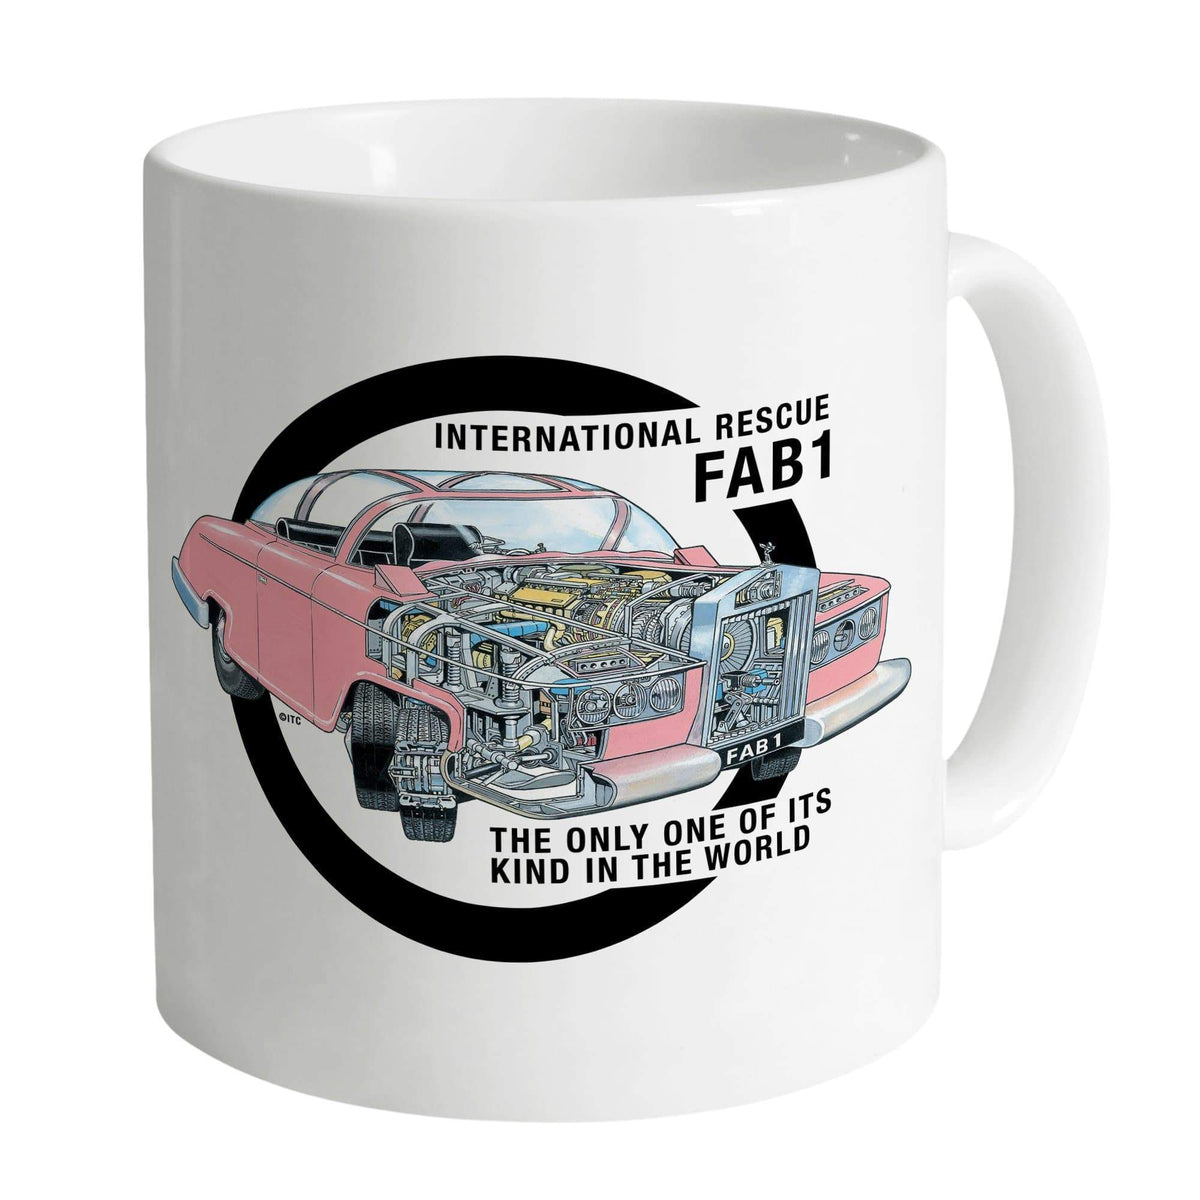 Thunderbird FAB 1 Cutaway White Mug [Official & Exclusive] - The Gerry Anderson Store